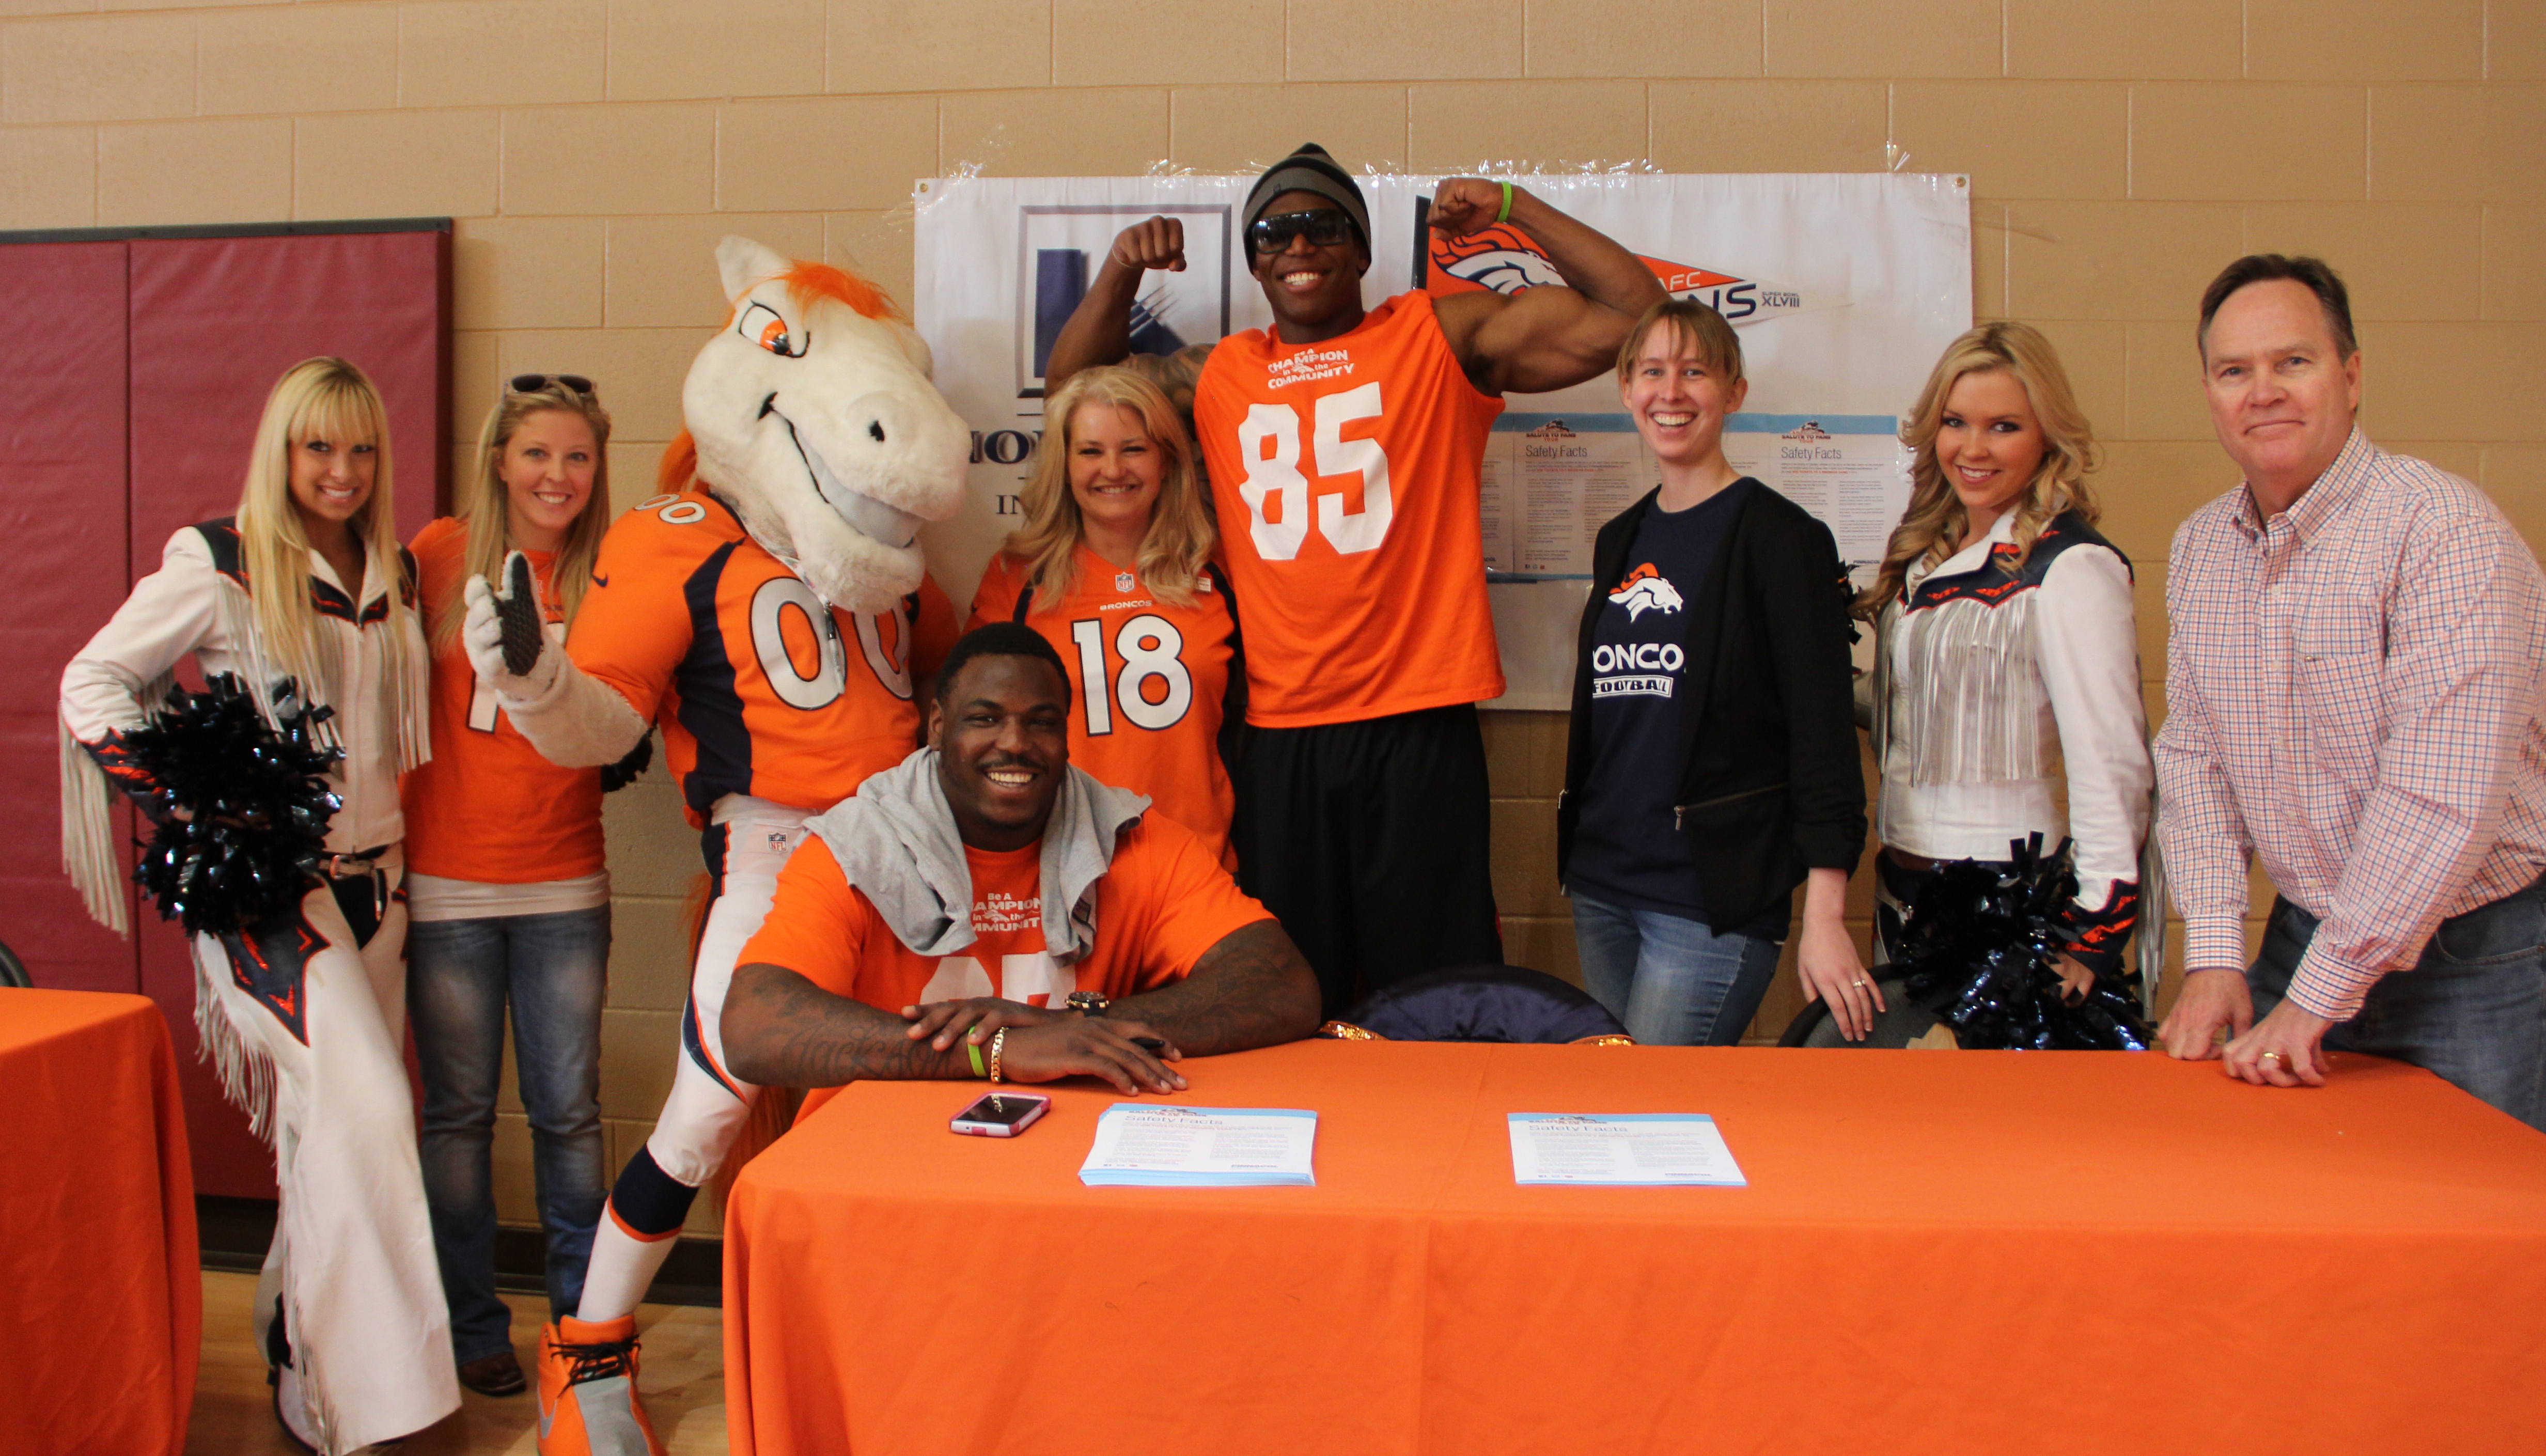 Home Loan Insurance employees help raise safety awareness with Pinnacol Assurance and the Denver Broncos!